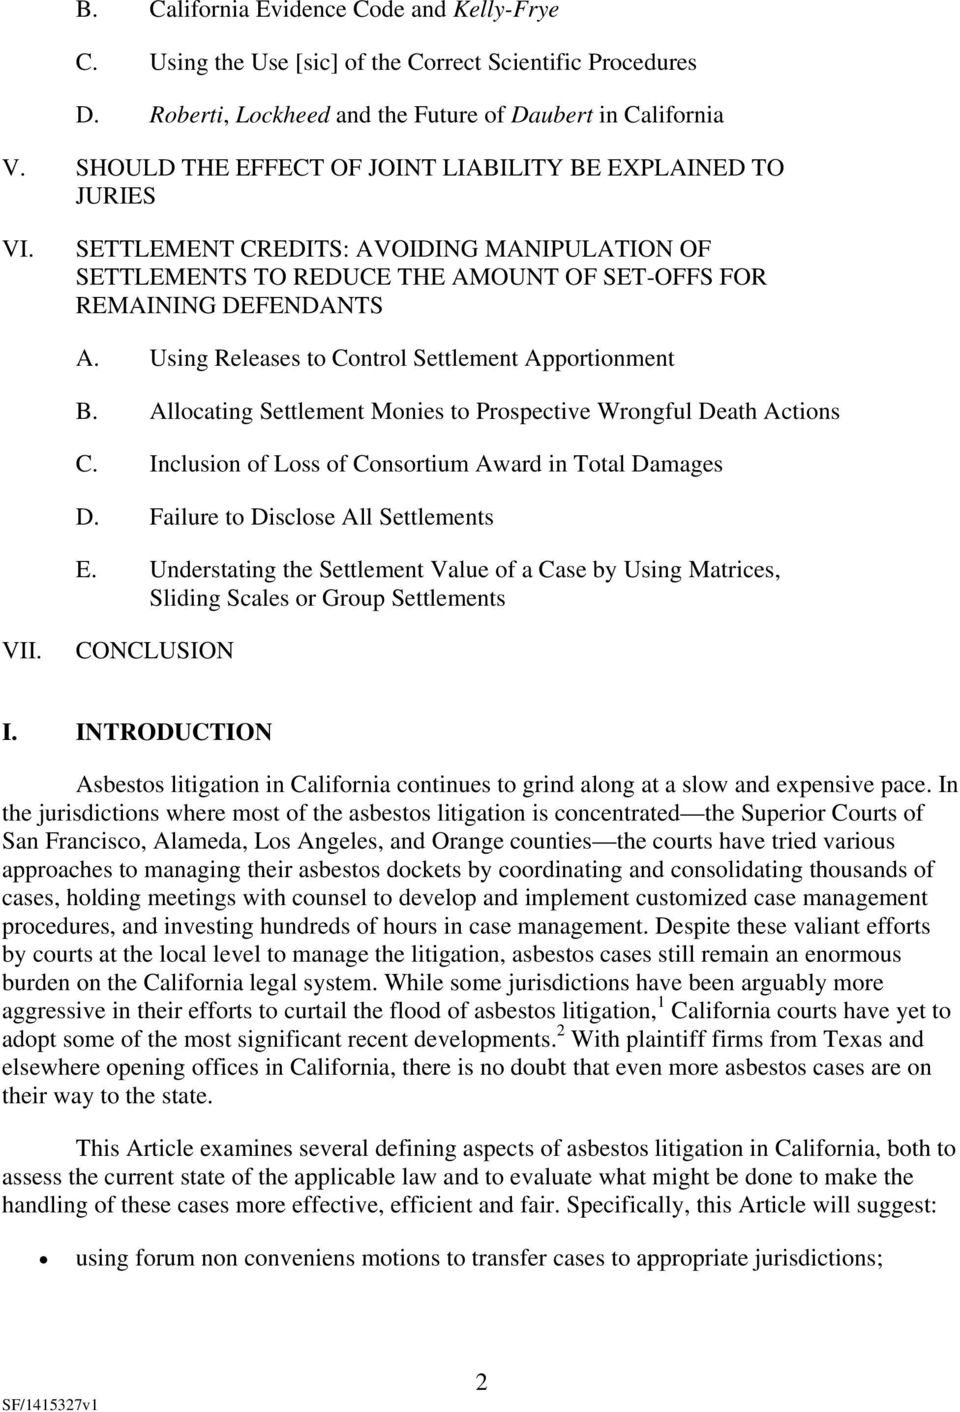 Using Releases to Control Settlement Apportionment B. Allocating Settlement Monies to Prospective Wrongful Death Actions C. Inclusion of Loss of Consortium Award in Total Damages D.